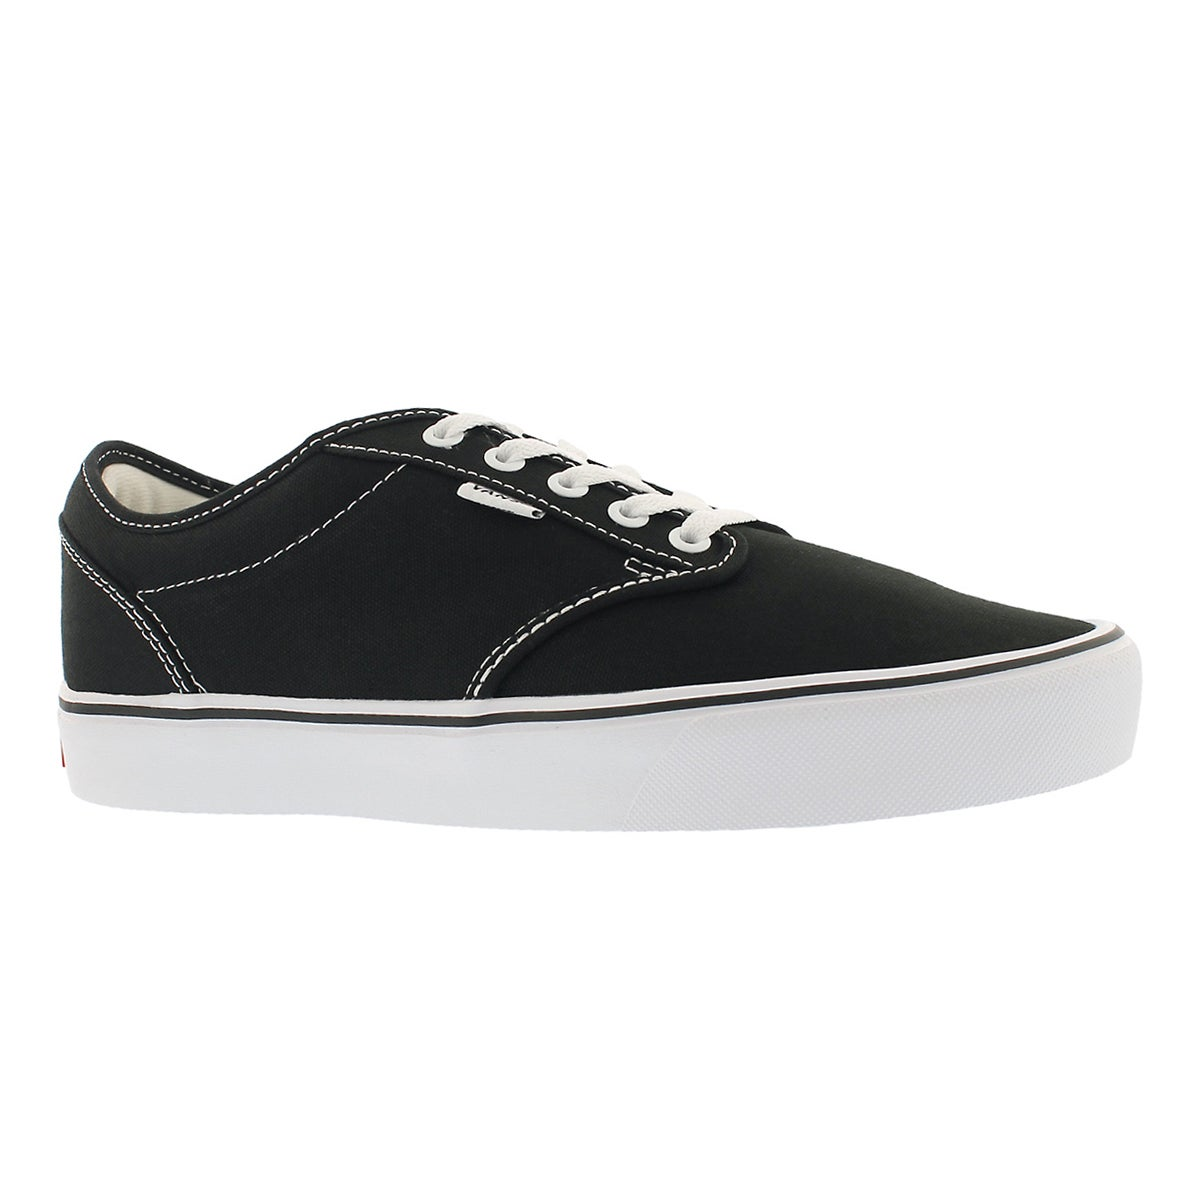 Men's ATWOOD LITE black lace up sneakers